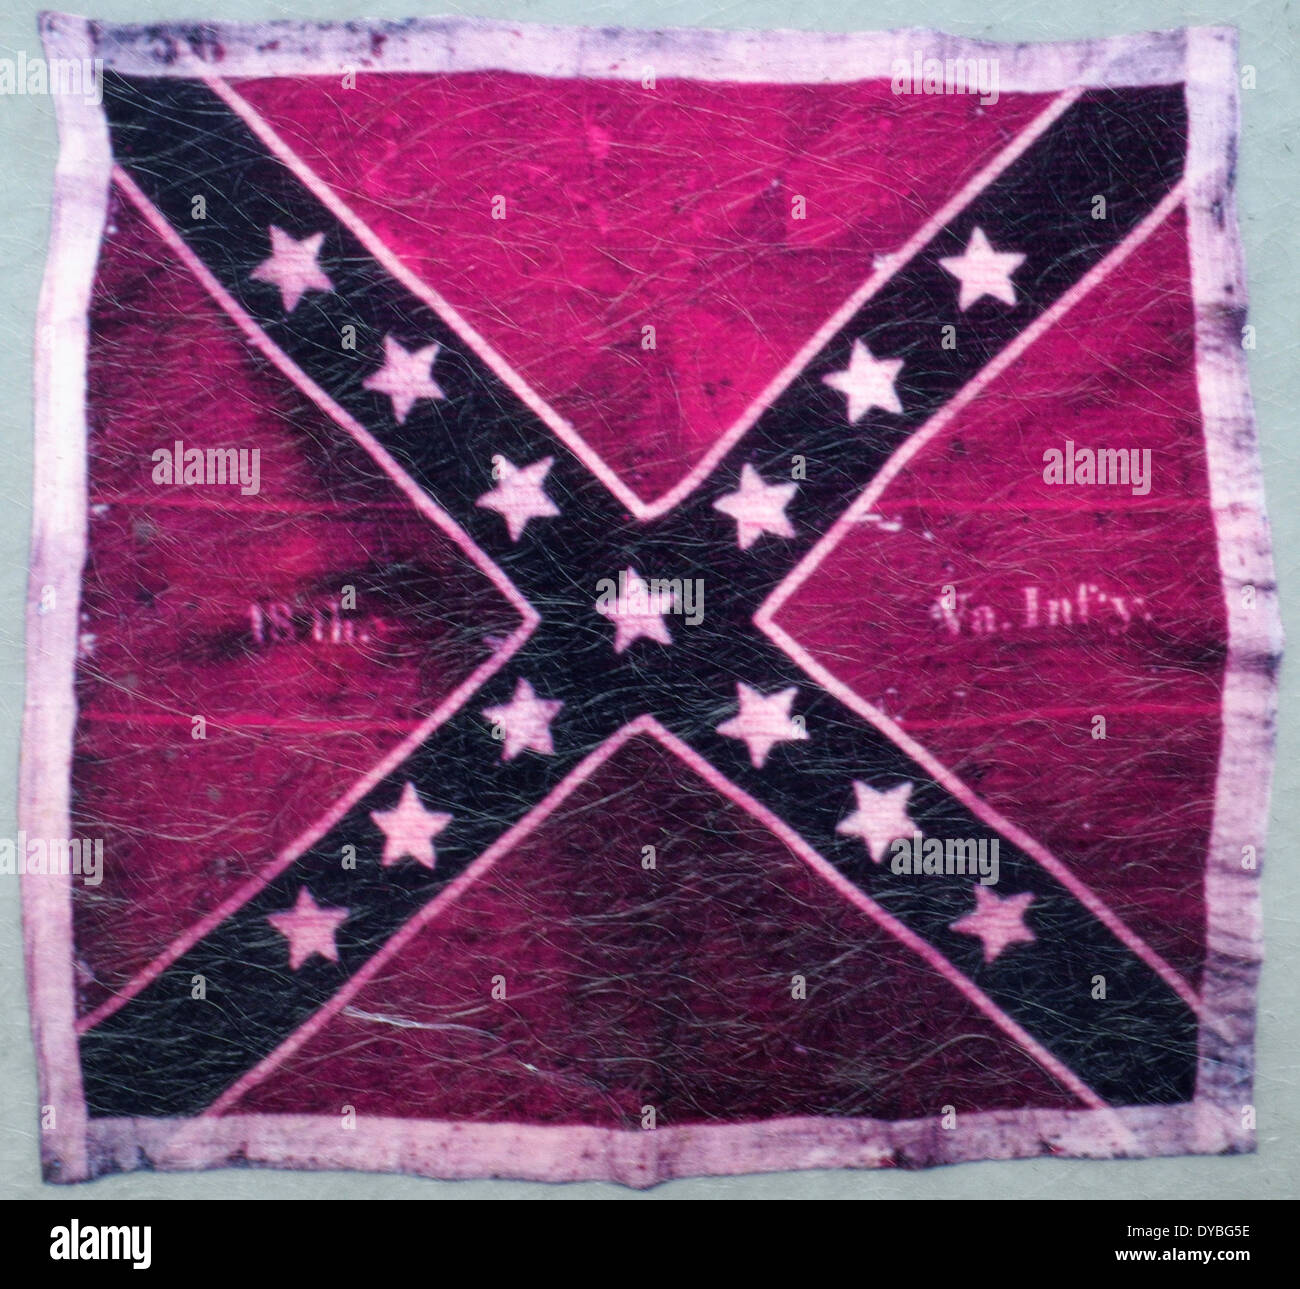 Battle flag of the 18th Virginia Infantry carried in Pickett's Charge and captured by the 59th New York Infantry, Battle of Gettysburg, July 1863 - Stock Image